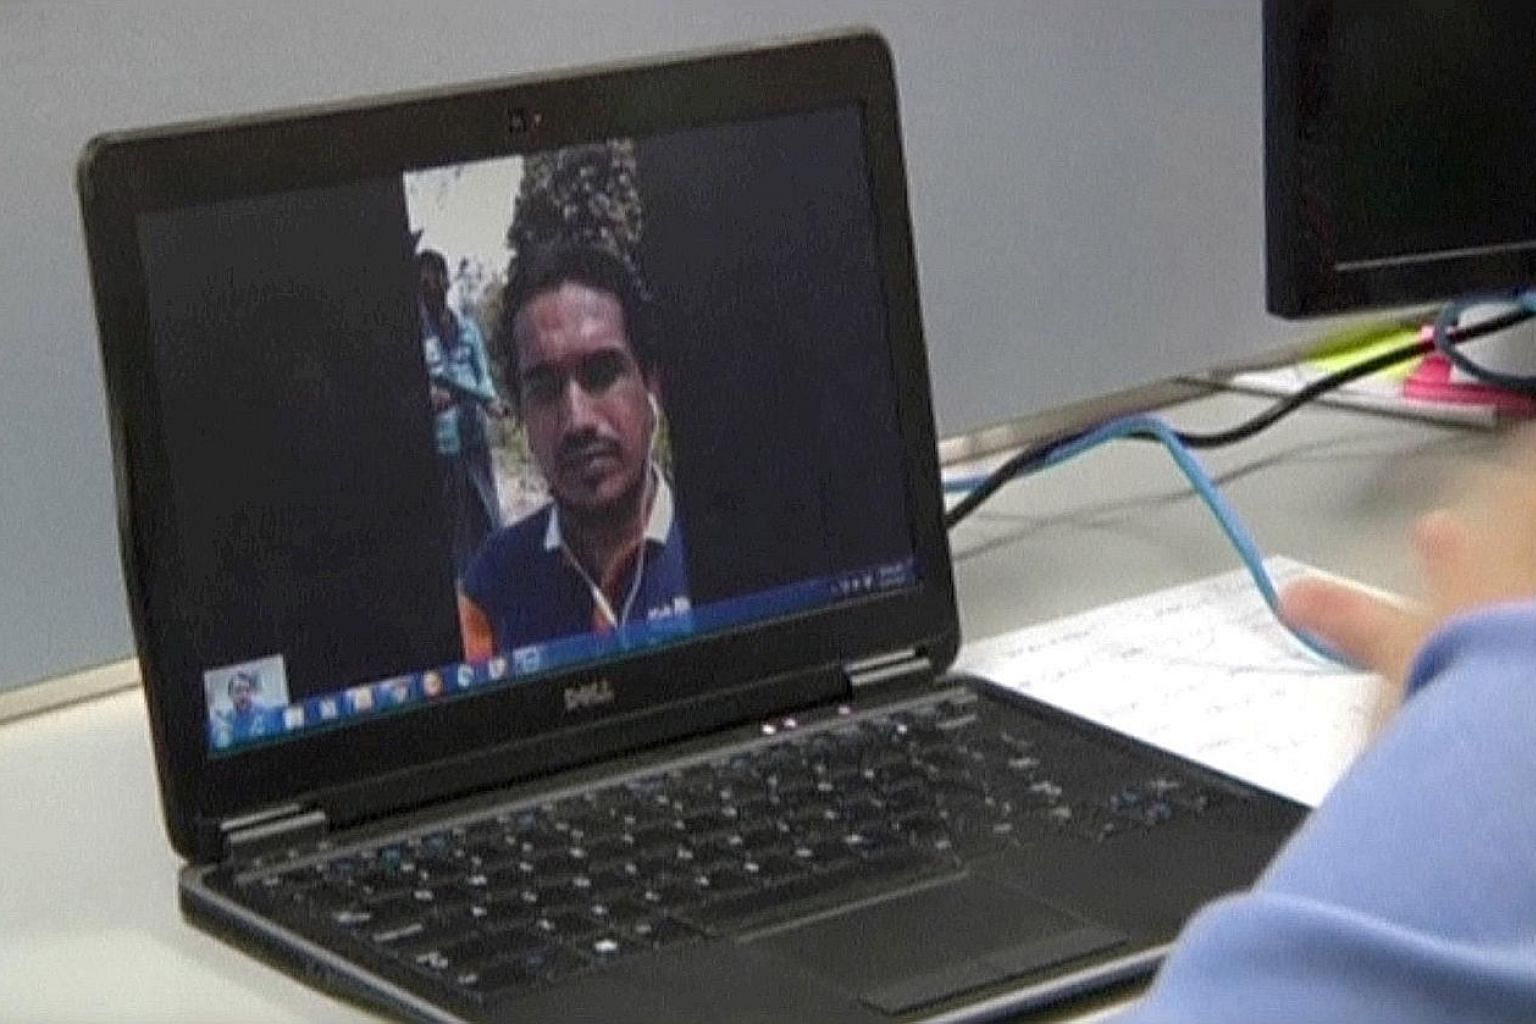 Ata Ullah, leader of the Arakan Rohingya Salvation Army, or Arsa, seen here during a Skype interview with Reuters in Yangon.